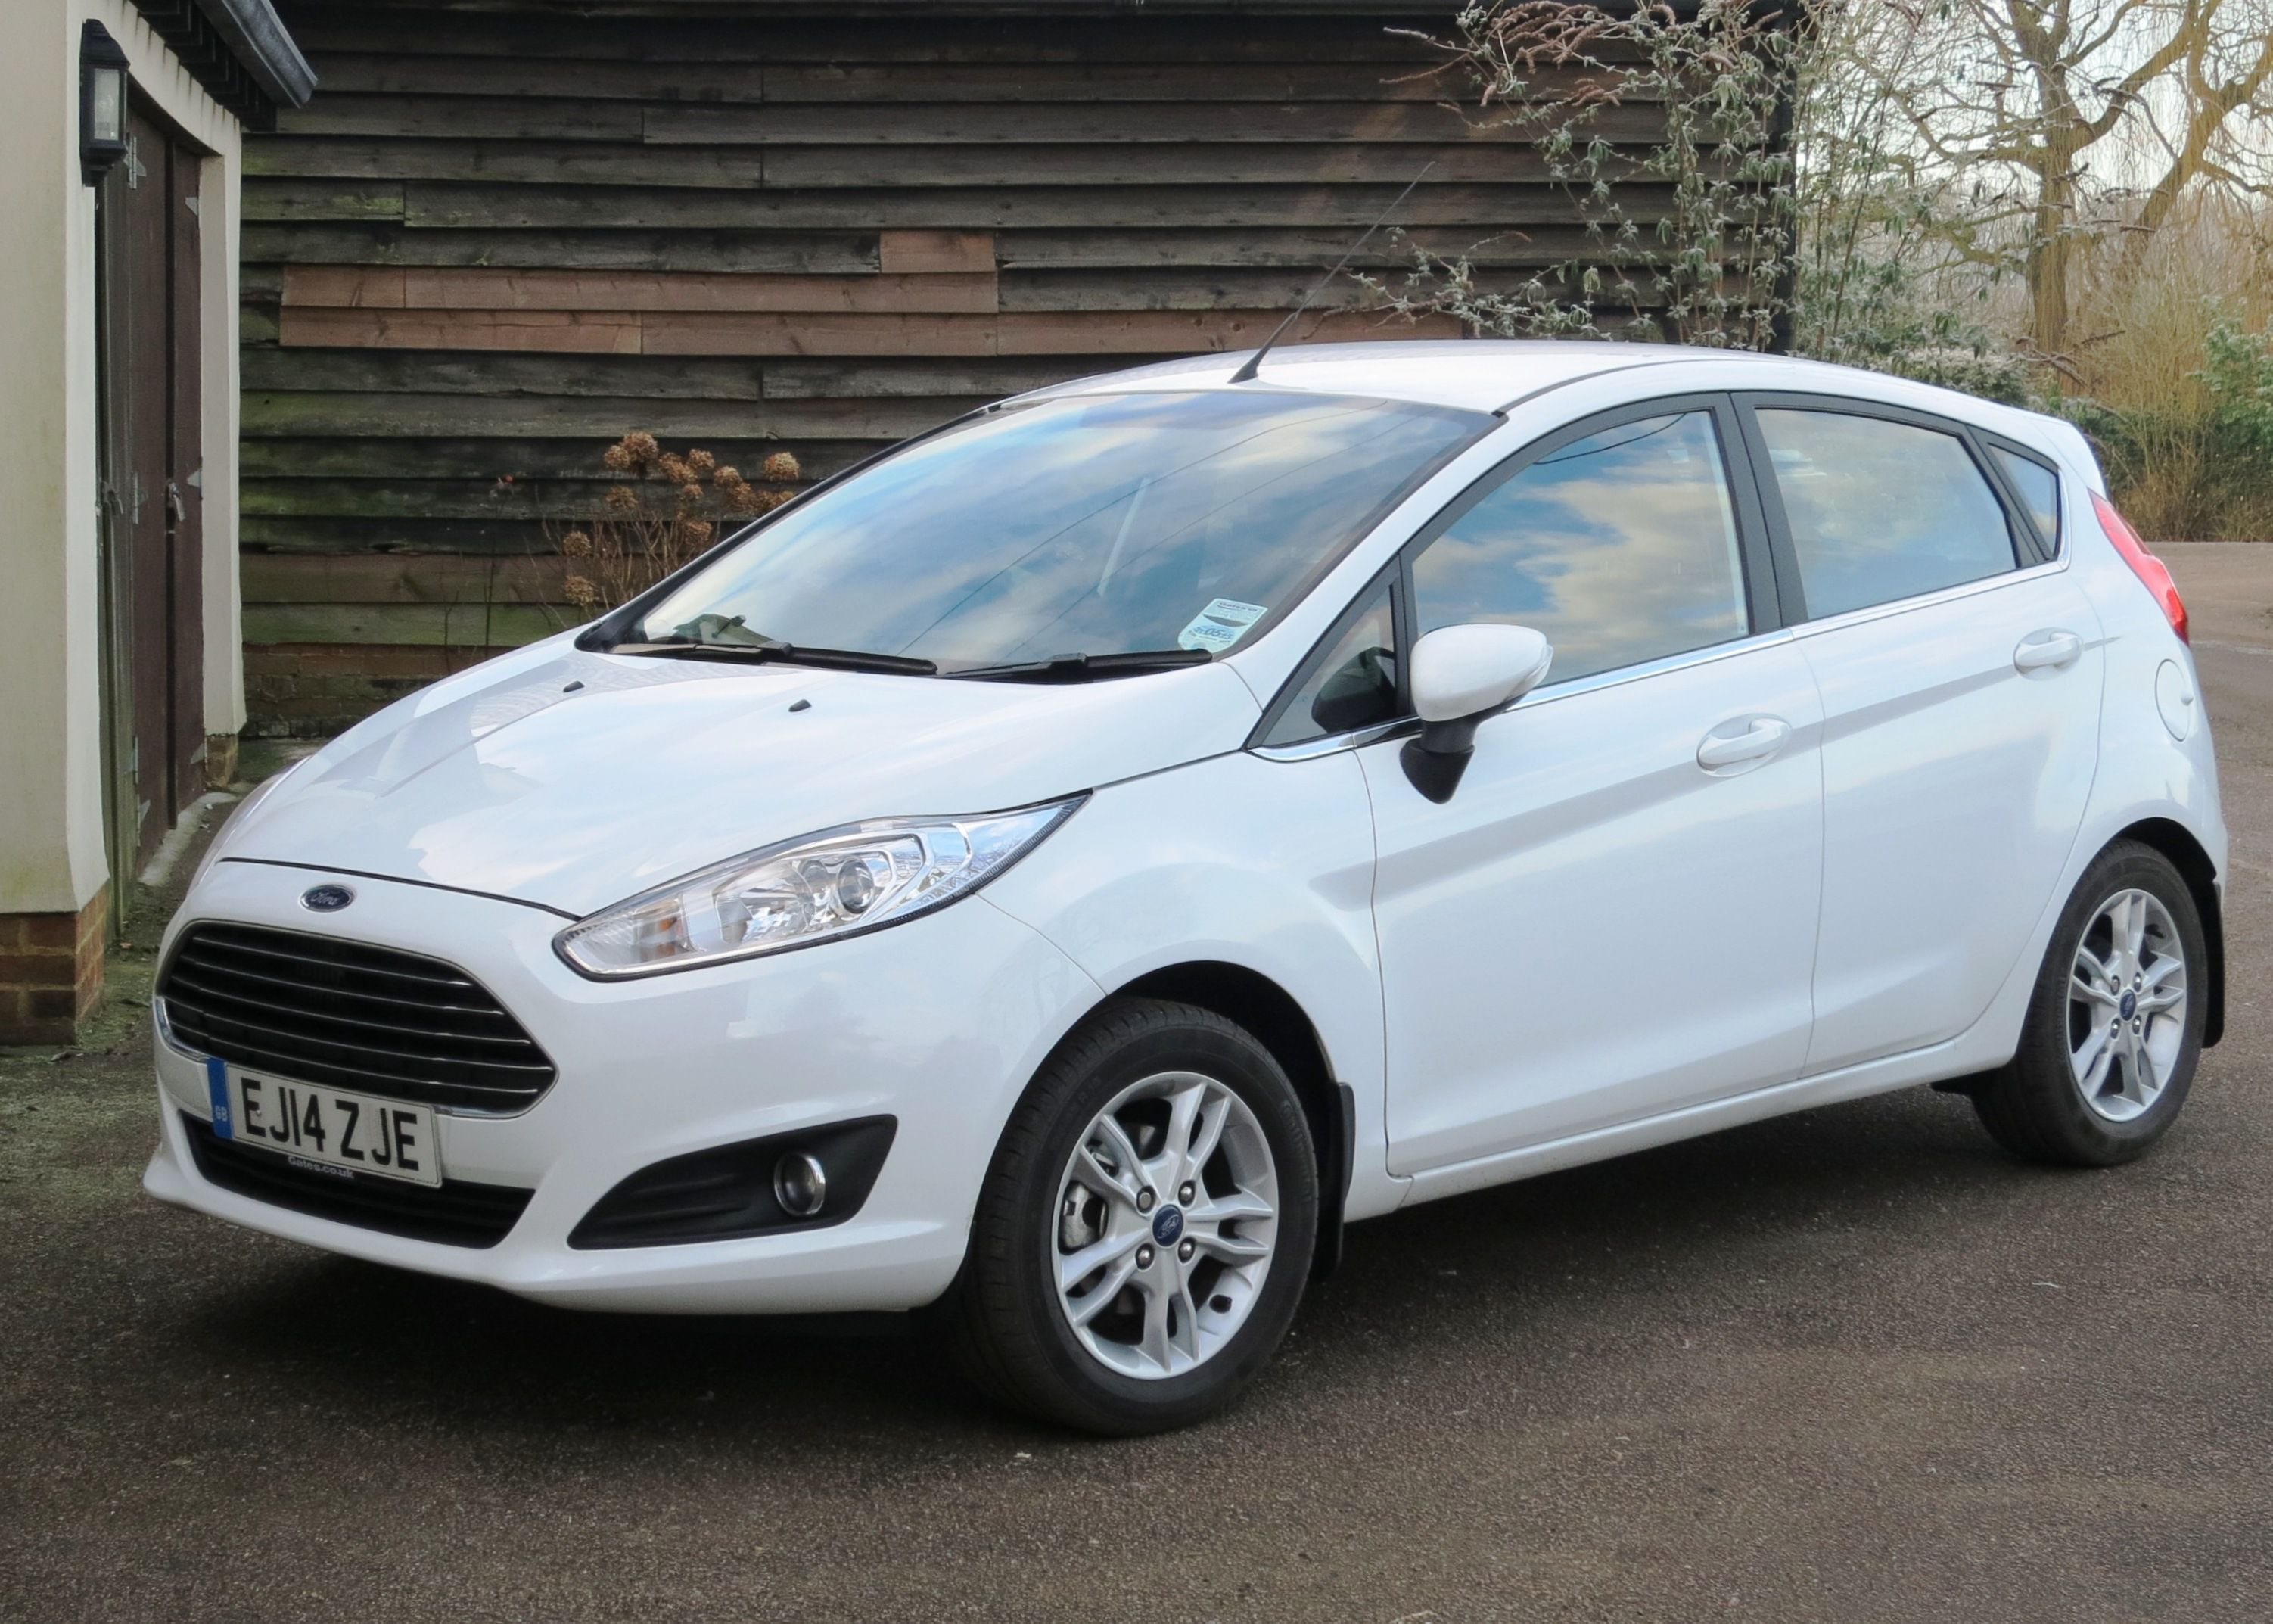 Ford Fiesta High Definition